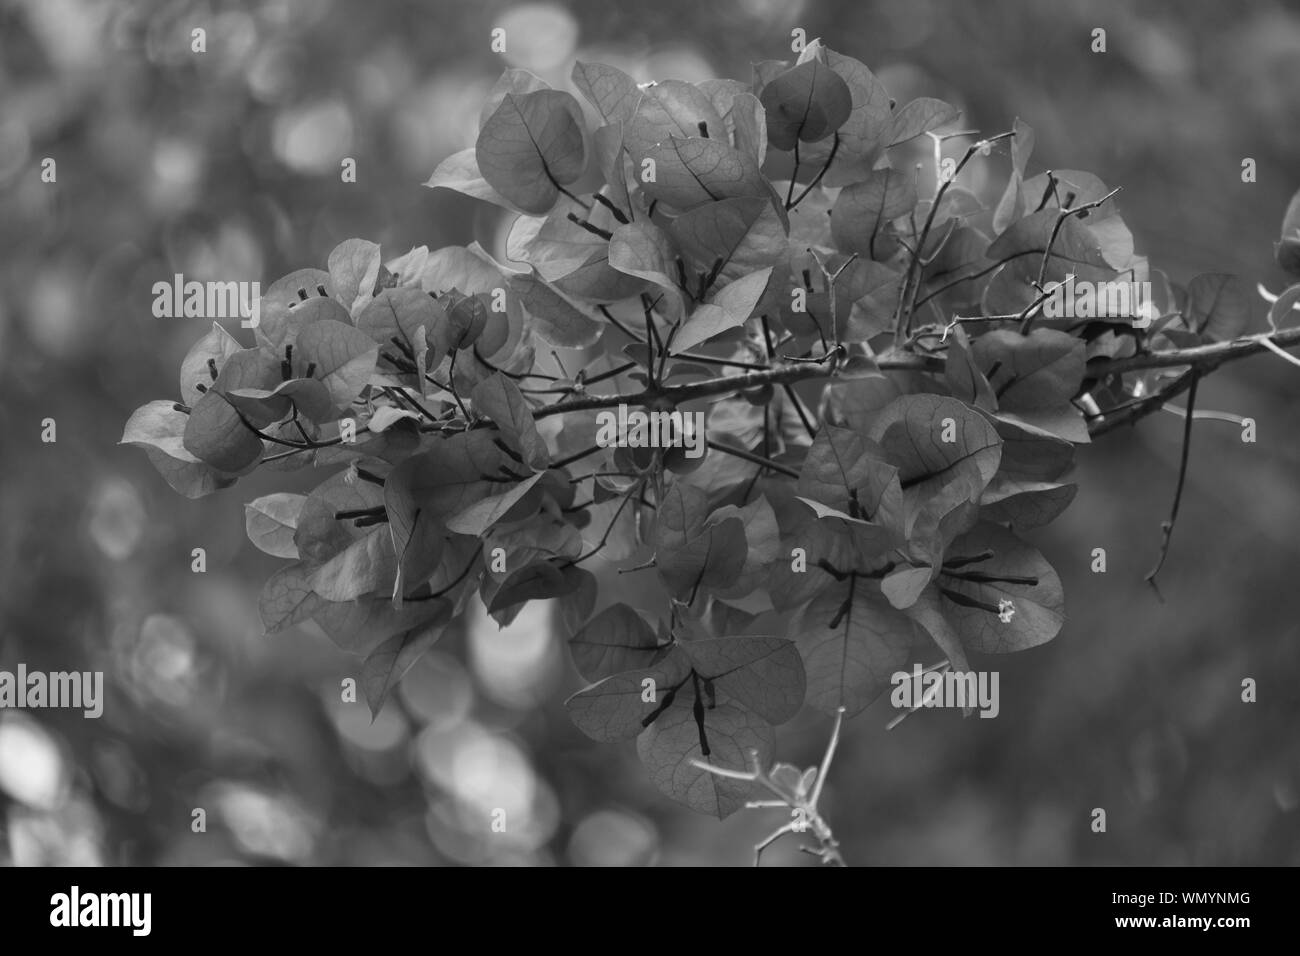 Blurred Flowers In Foreground Black And White Stock Photos Images Alamy